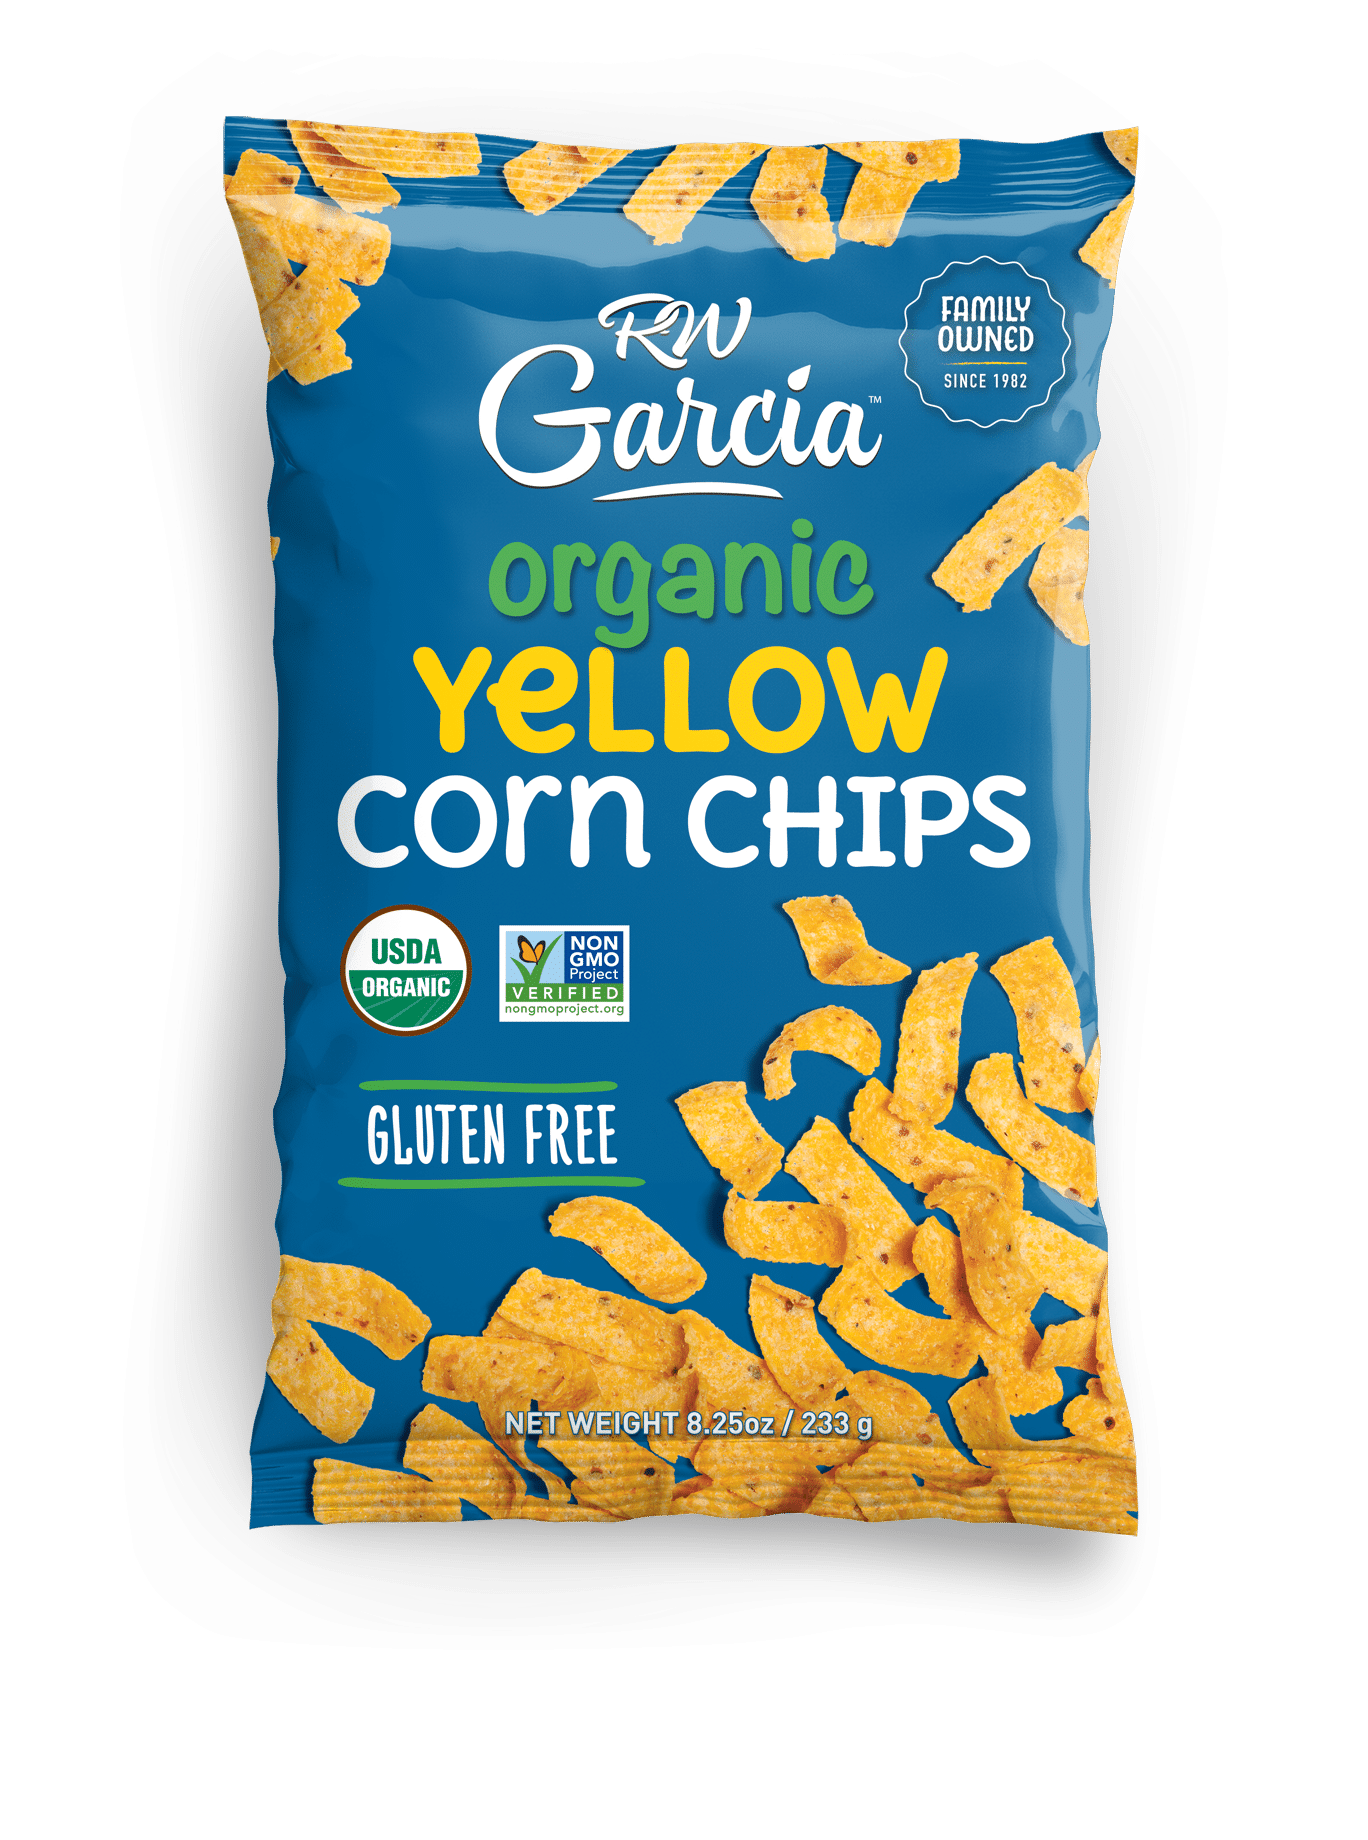 RWG_YellowCorn_Chips_8.25oz_3D_072719